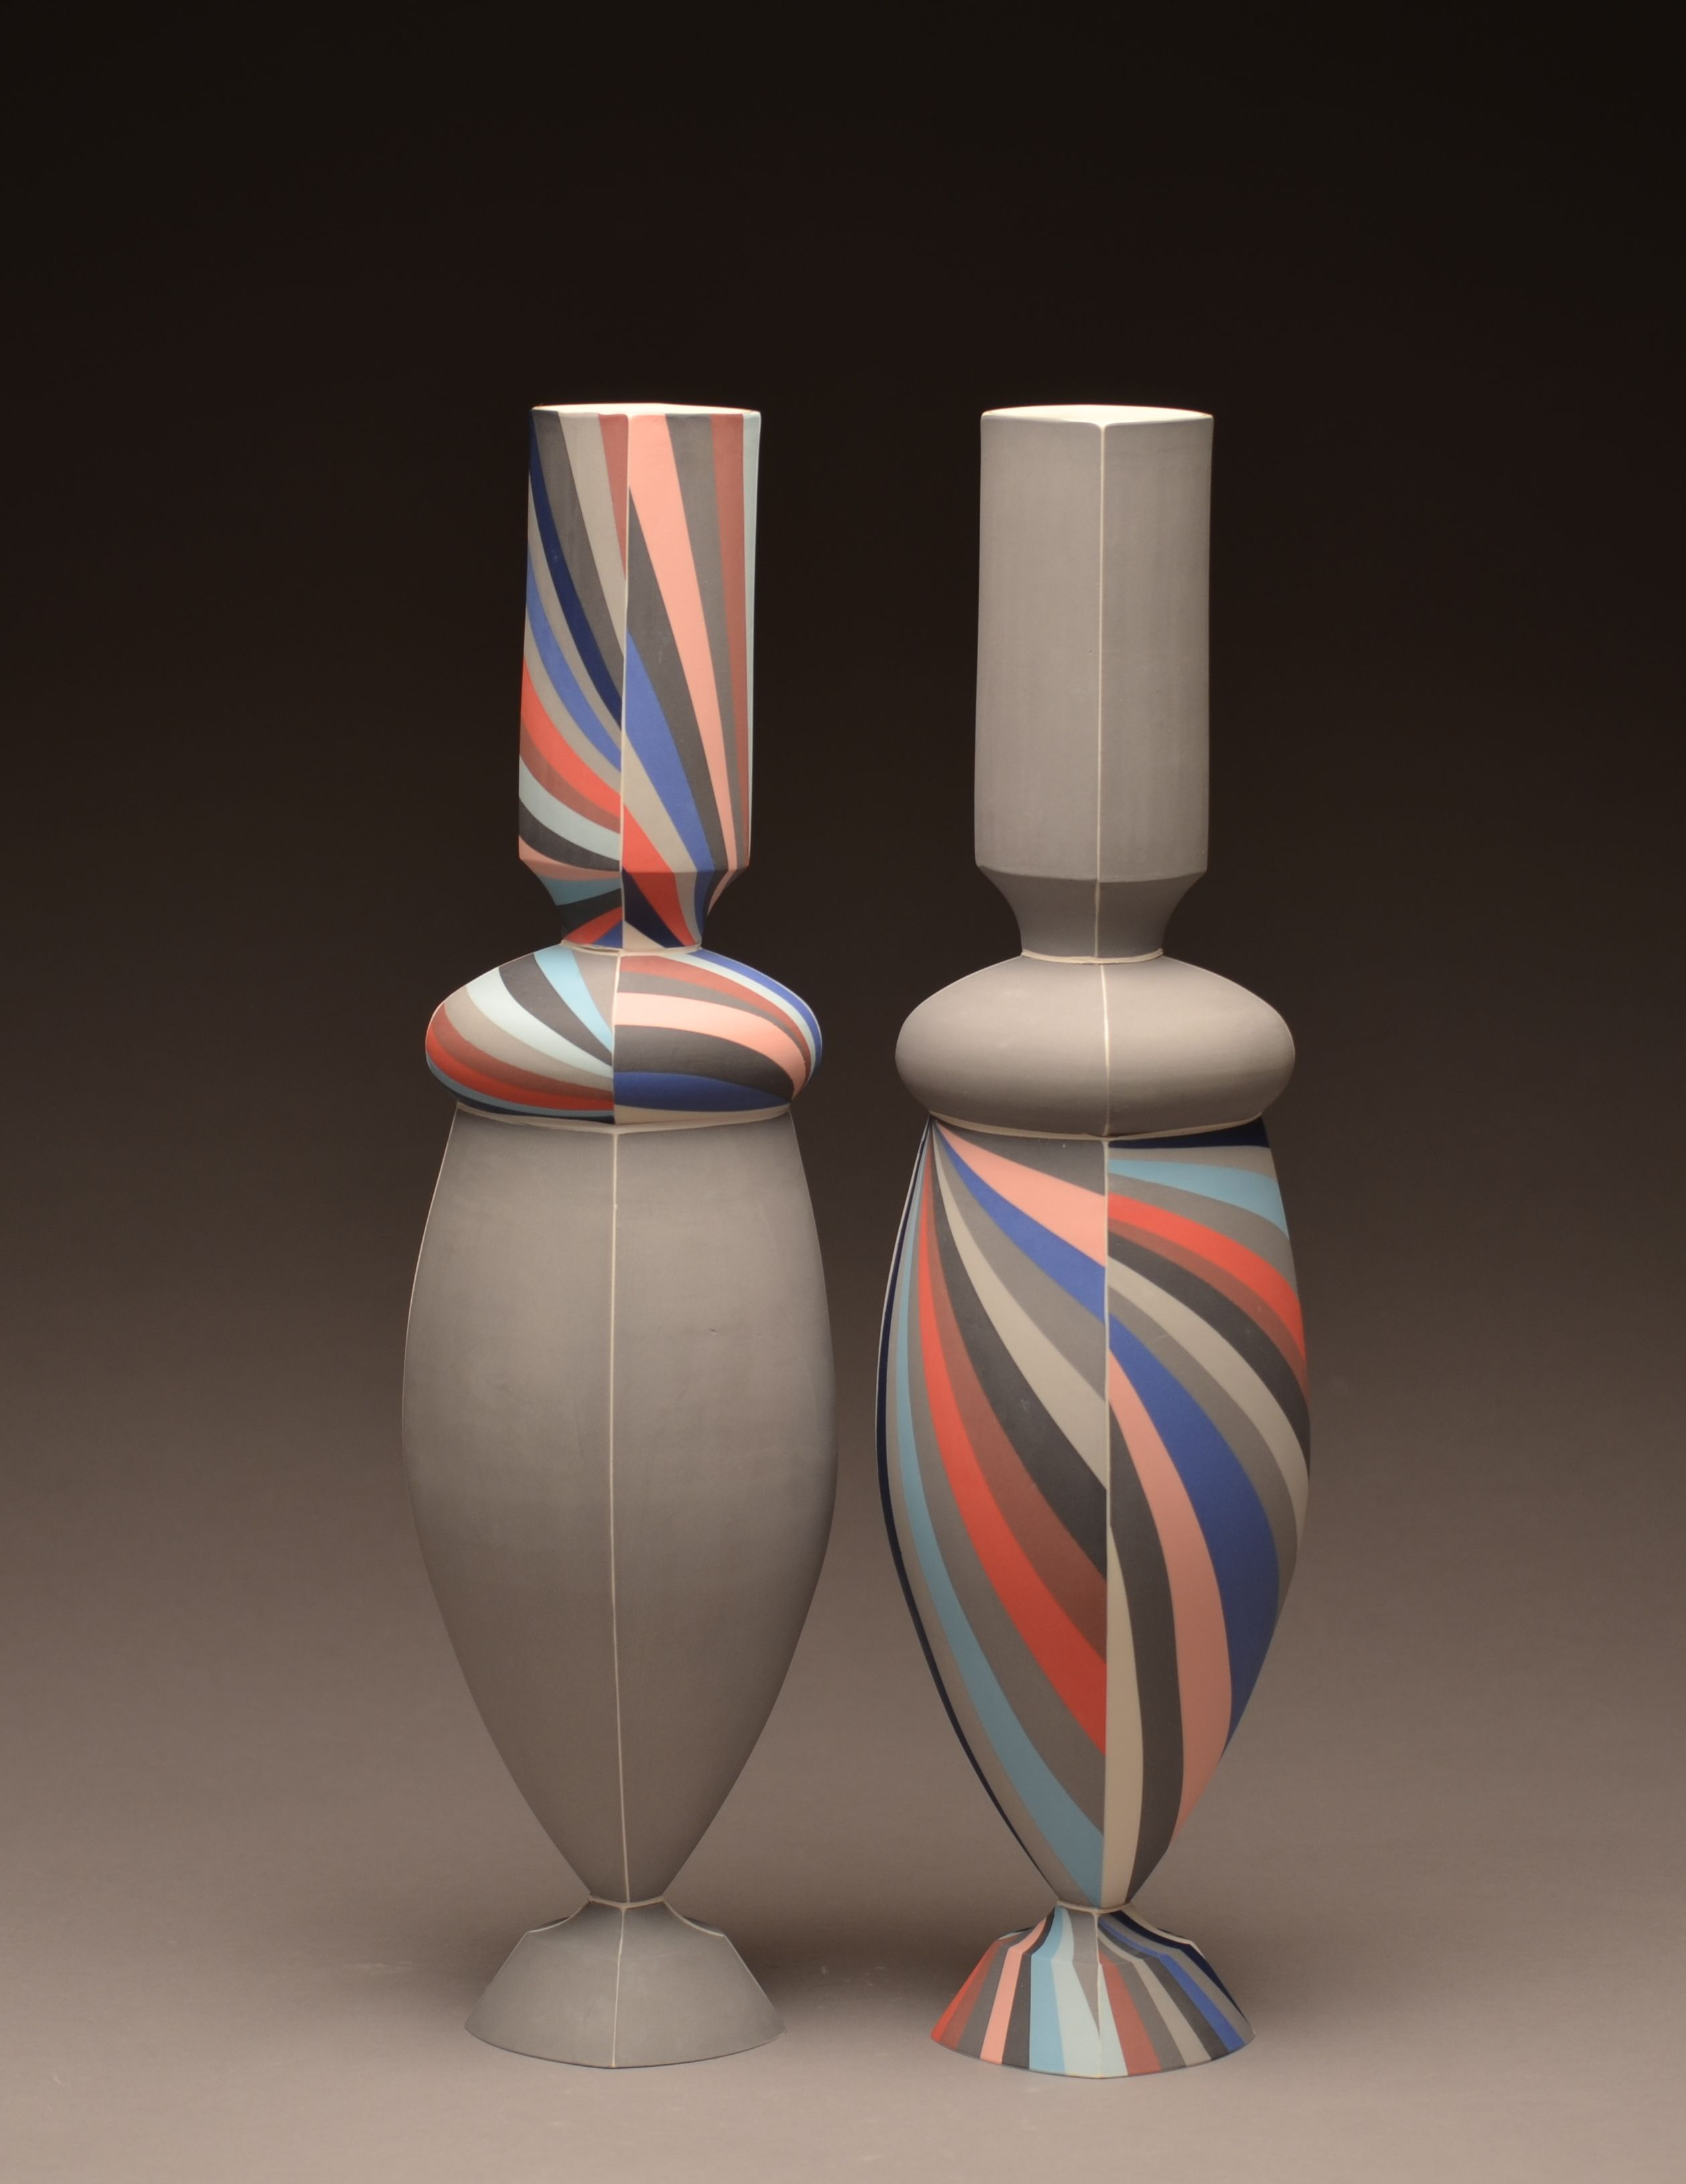 Peter pincus google search wishing pinterest artwork peter pincus a new york born ceramic artist is dedicated to colorful ceramic art very characteristic of his own style reviewsmspy